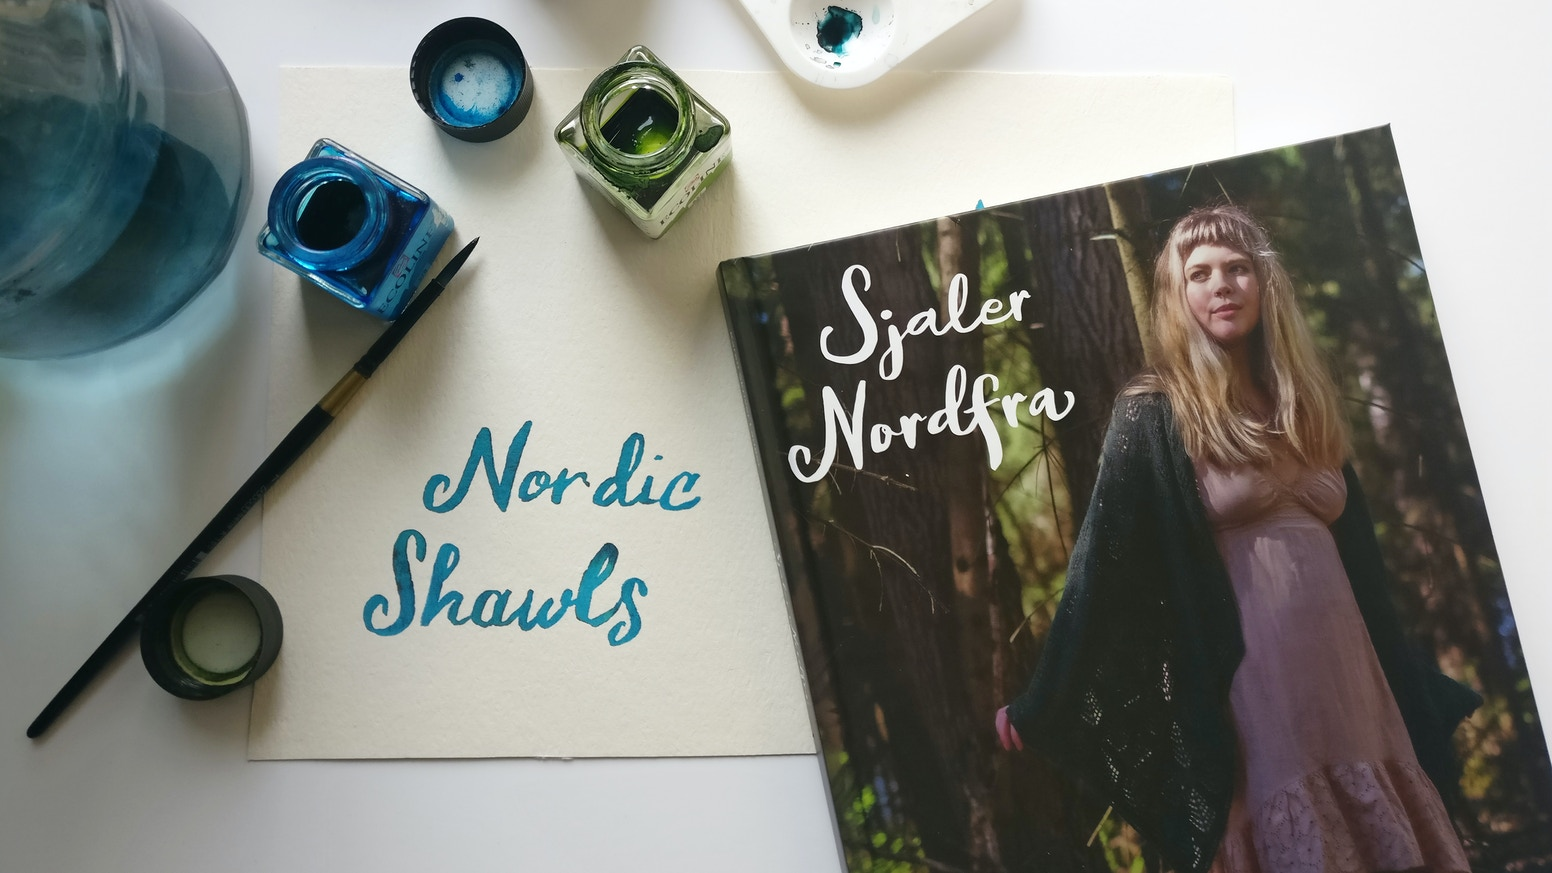 The English version of the original Danish knitting book Sjaler Nordfra by Karen Skriver Lauger